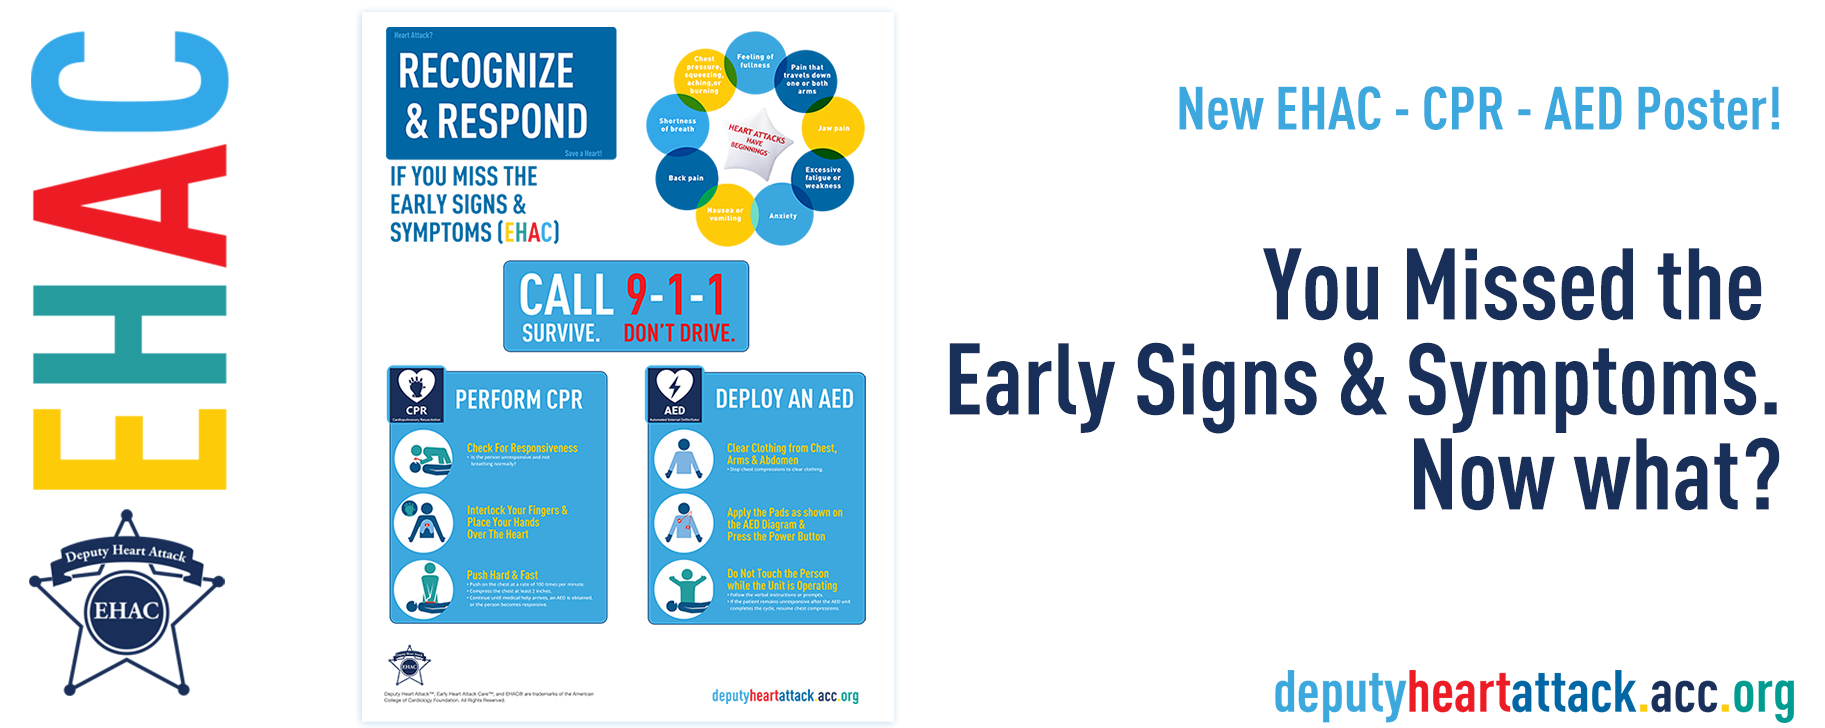 NEW EHAC CPR AED Poster